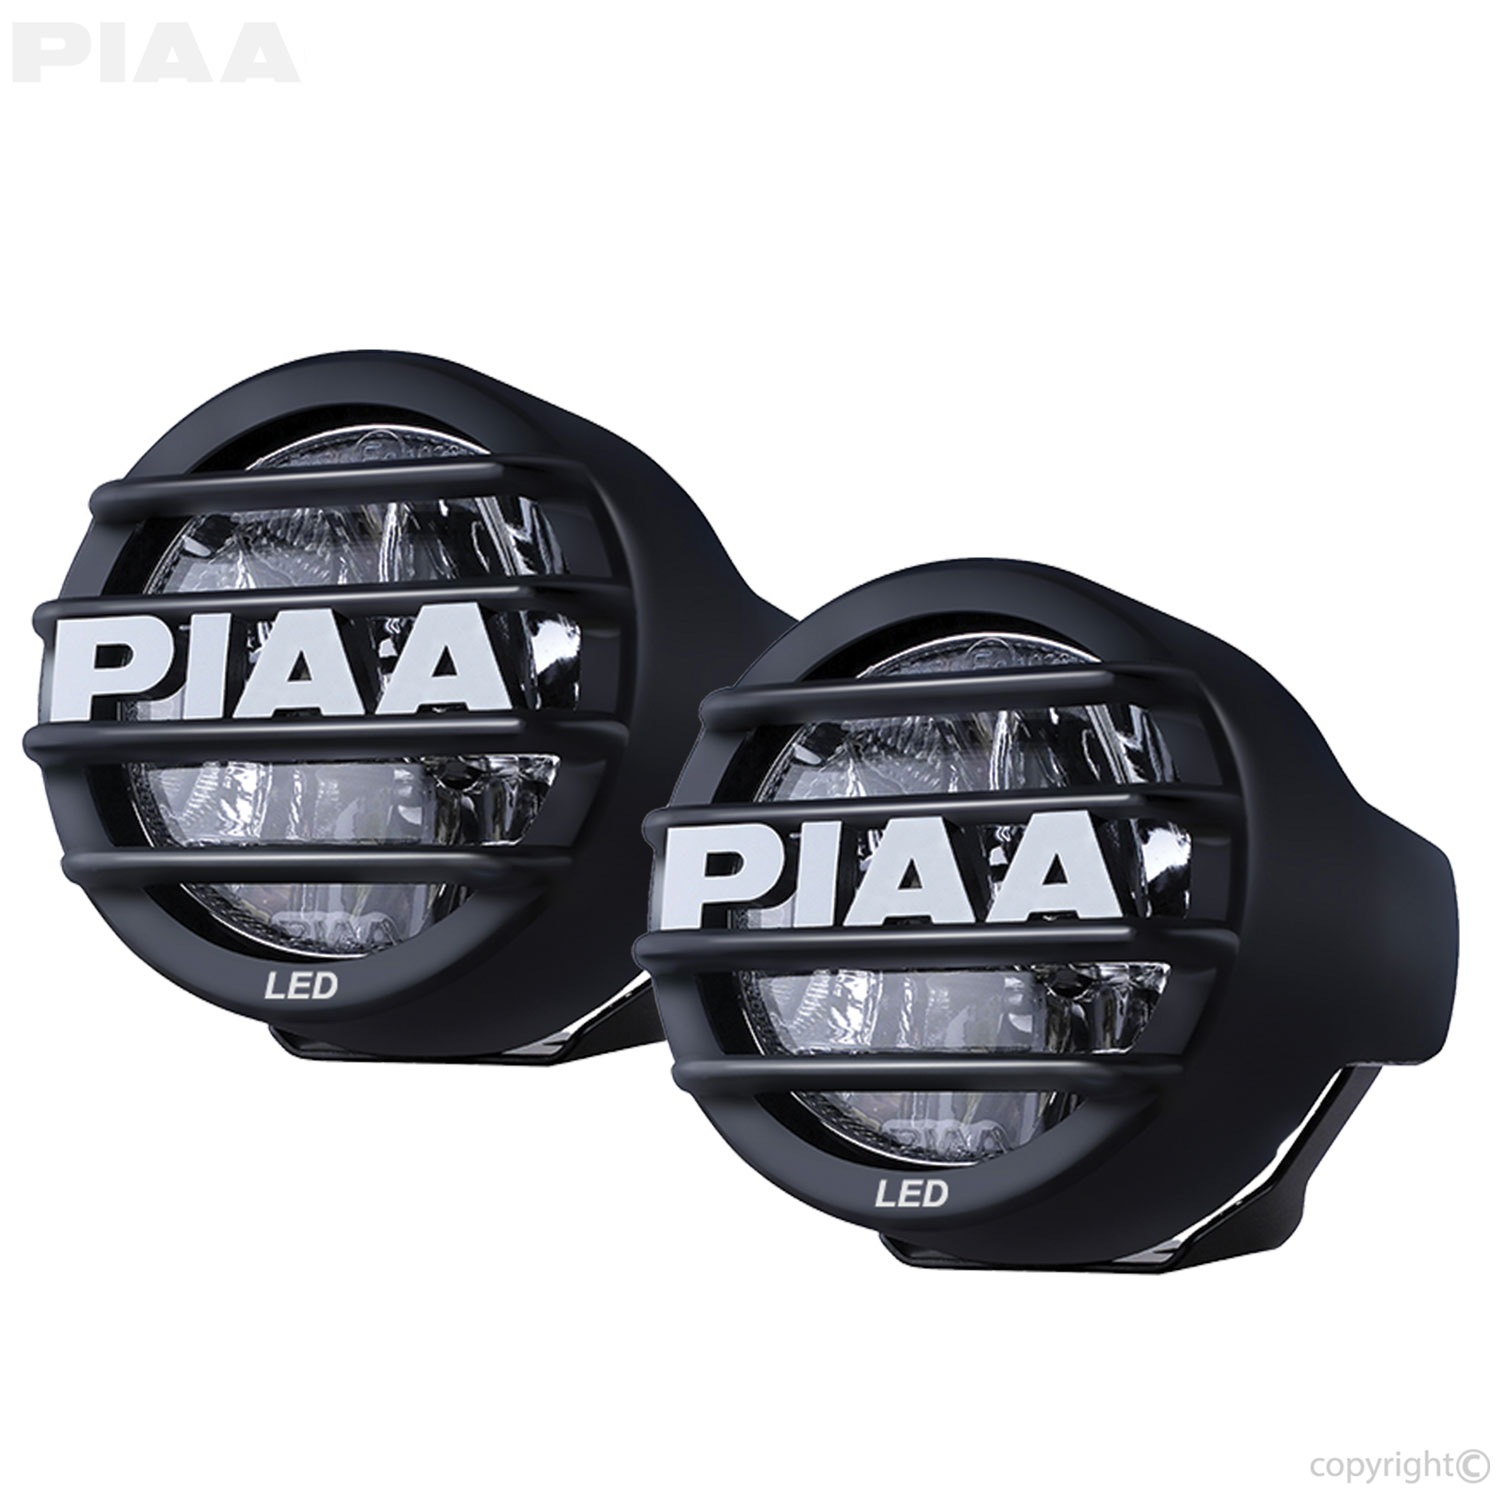 piaa 73532 530 led dual hr?bw=1000&w=1000&bh=1000&h=1000 piaa led lights for bmw motorcycles High Intensity LED Driving Lights at edmiracle.co